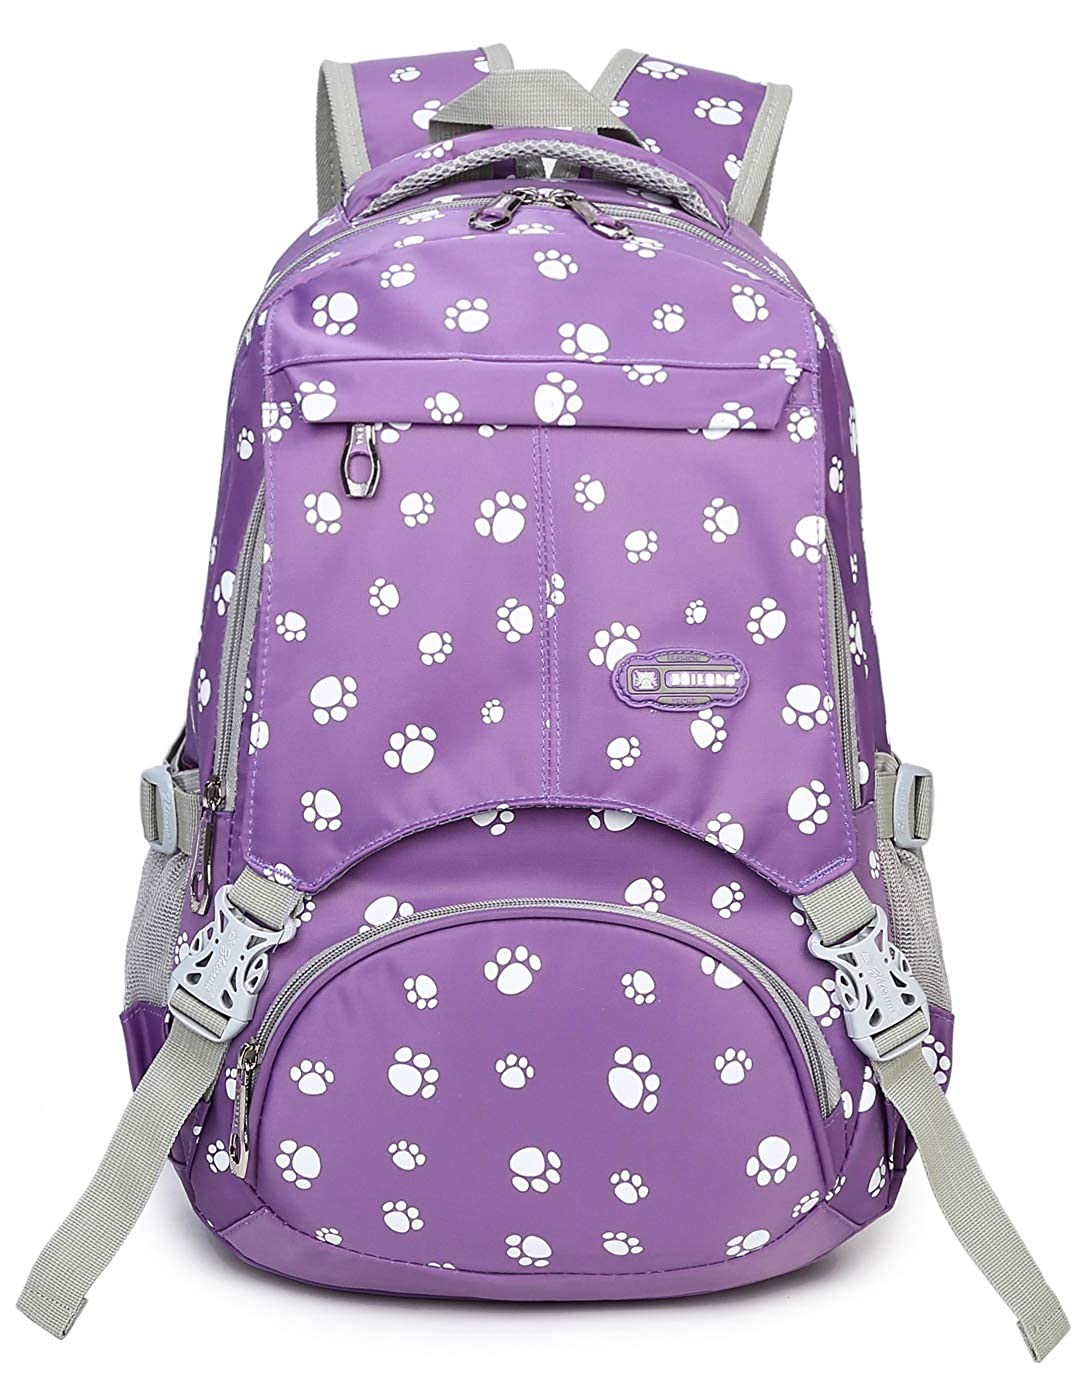 Kids School Backpacks for Girls Boys School Bags Bookbags for Children